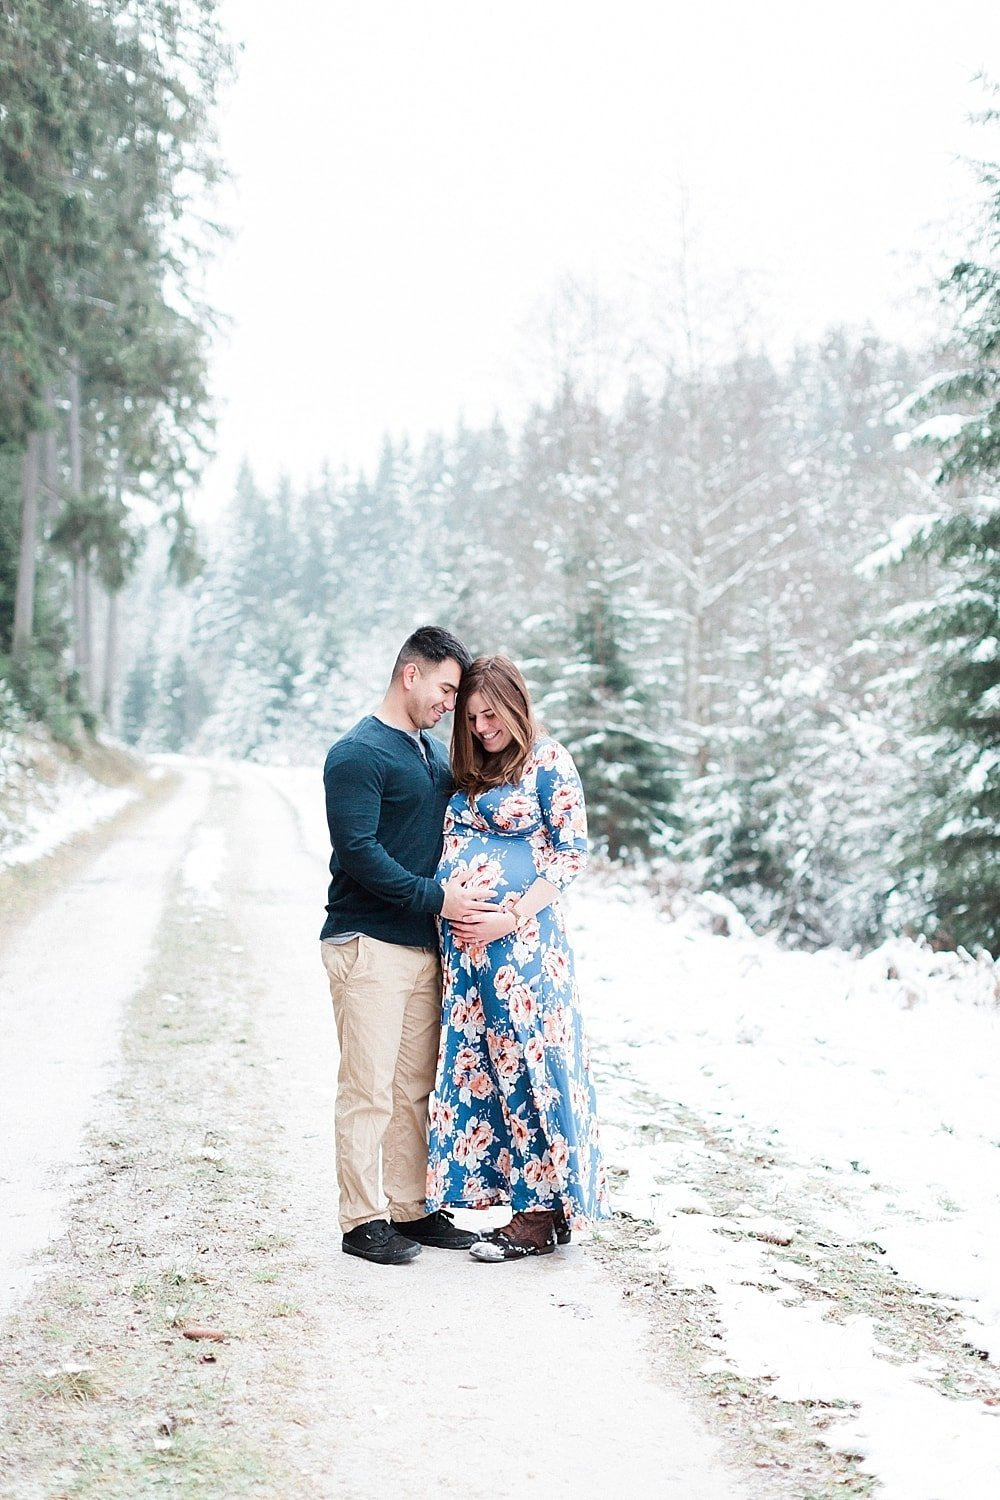 Snowy winter maternity session photographed by Alicia Yarrish Photography